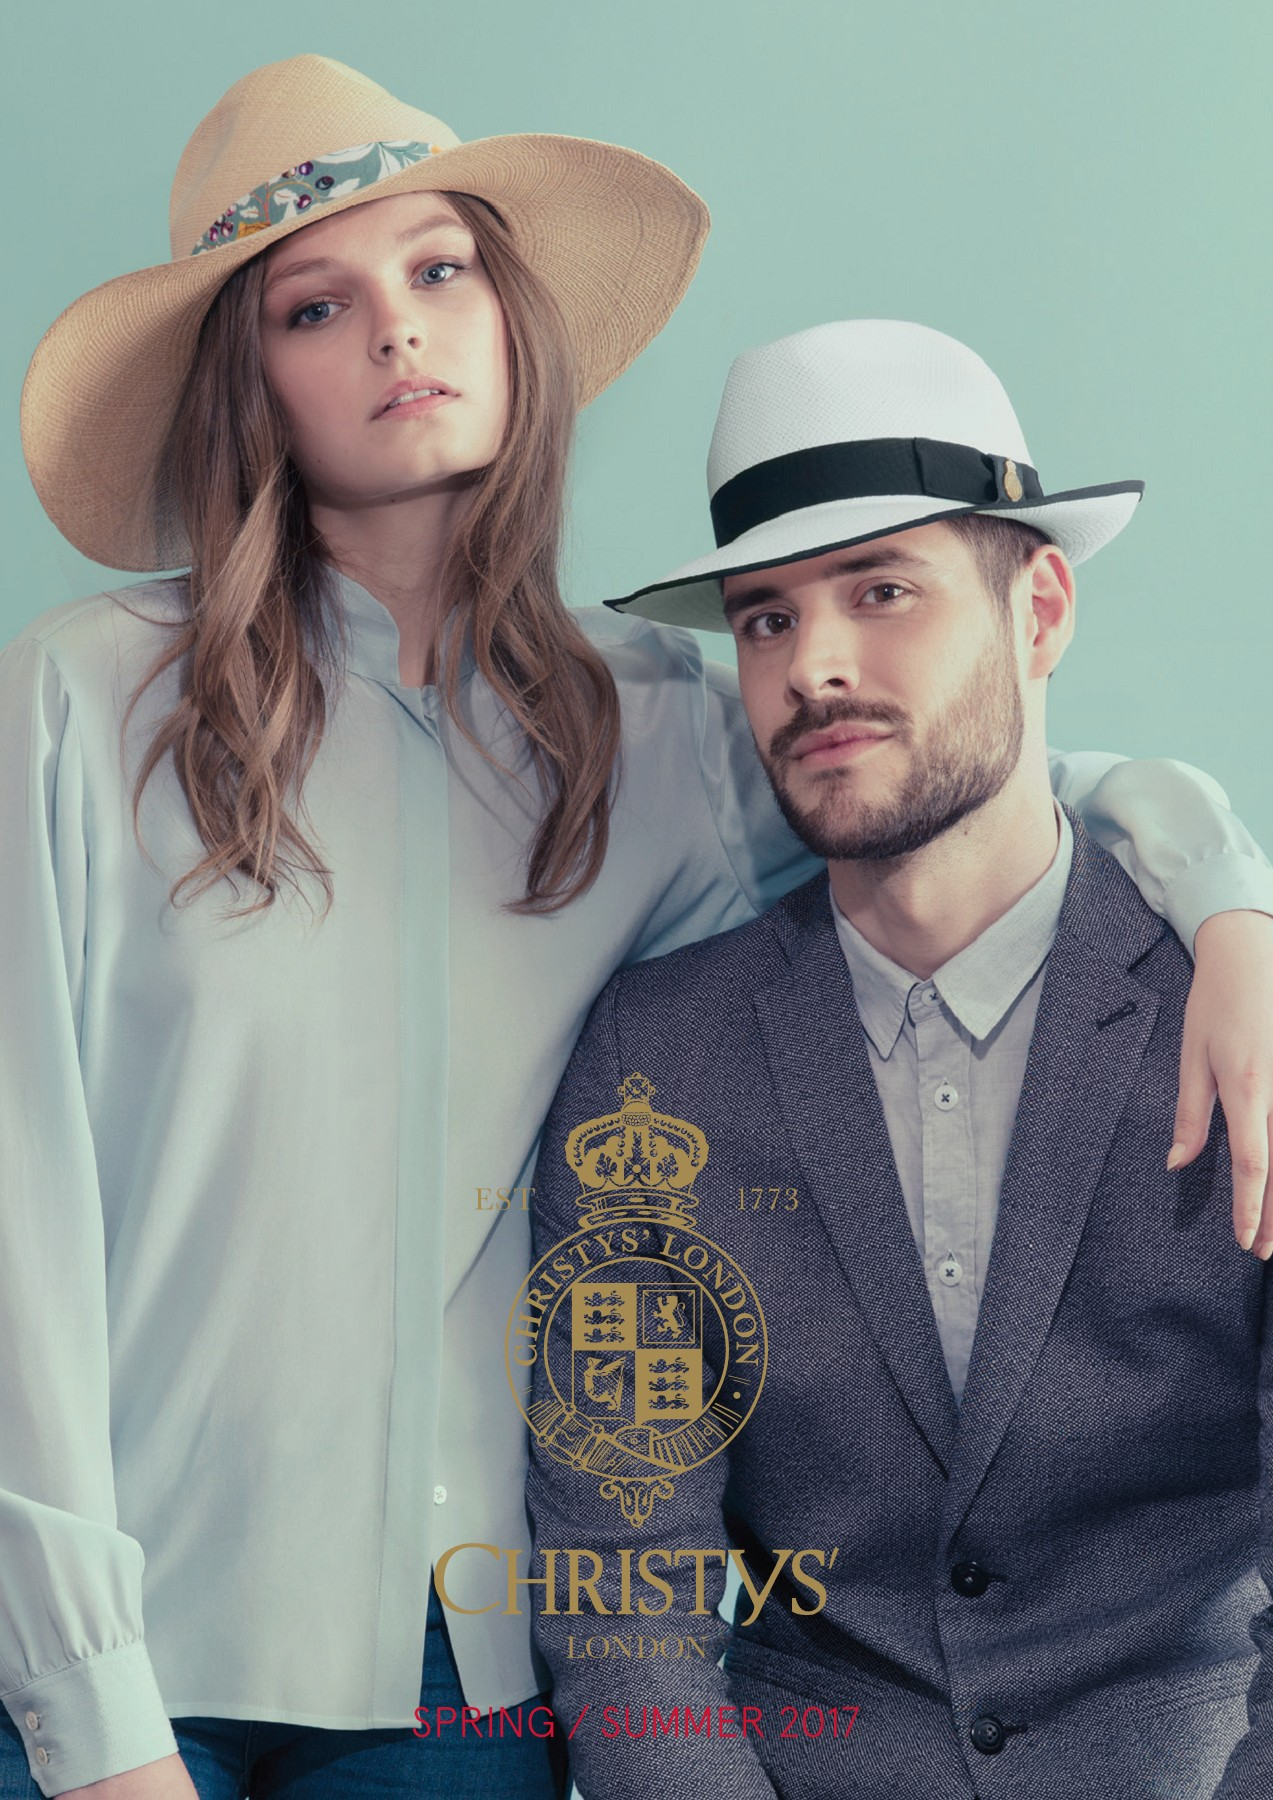 09e7a014af3 Christys  Hats Spring Summer 2016 Collection. Christys  Spring Summer 2017  collection is a celebration of the versatility of the hand